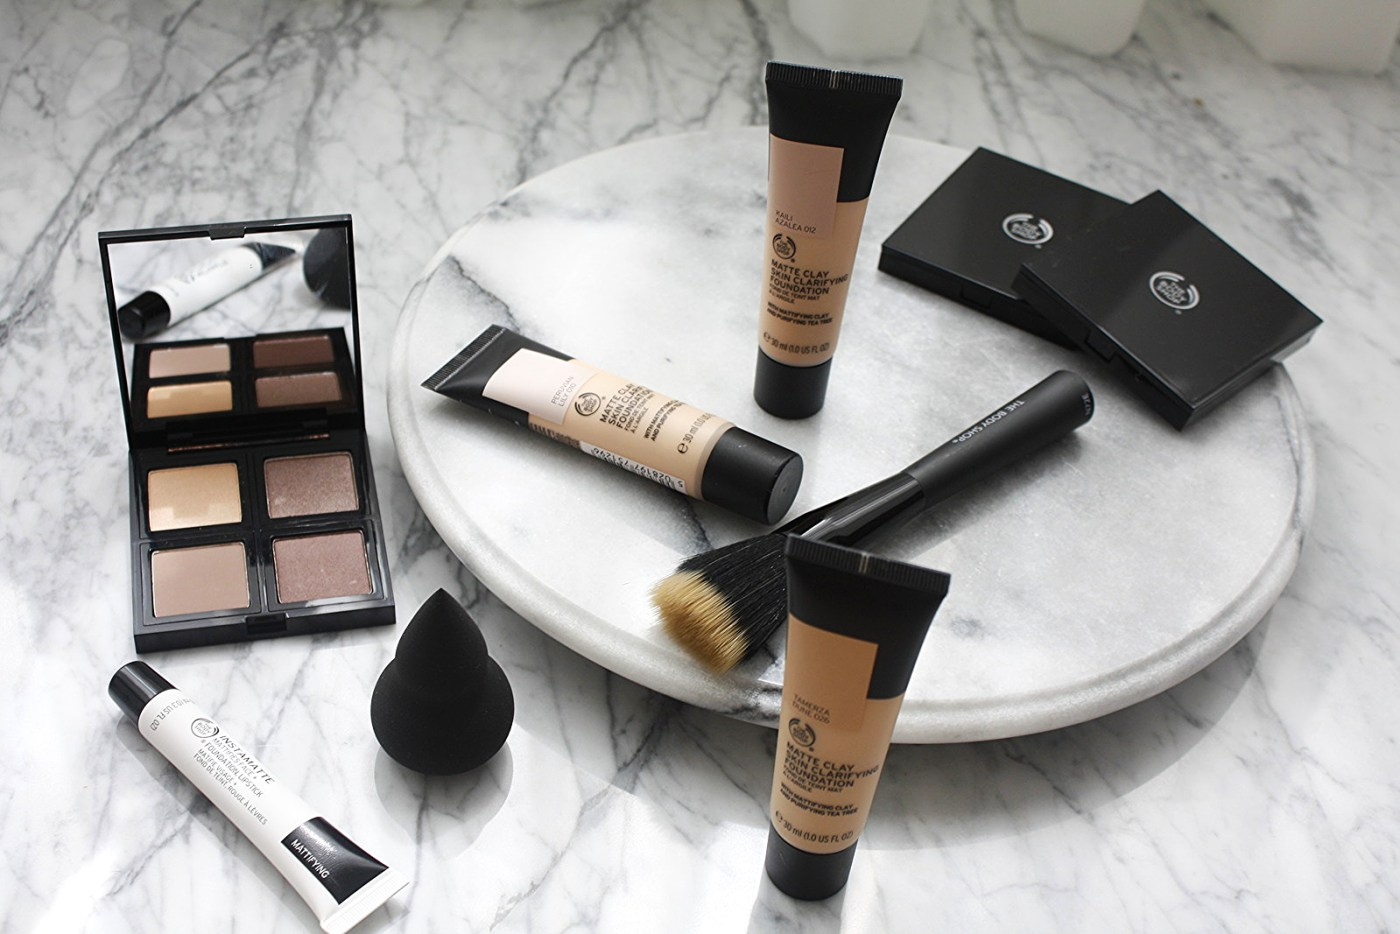 THE BODY SHOP MATTE CLAY FOUNDATION